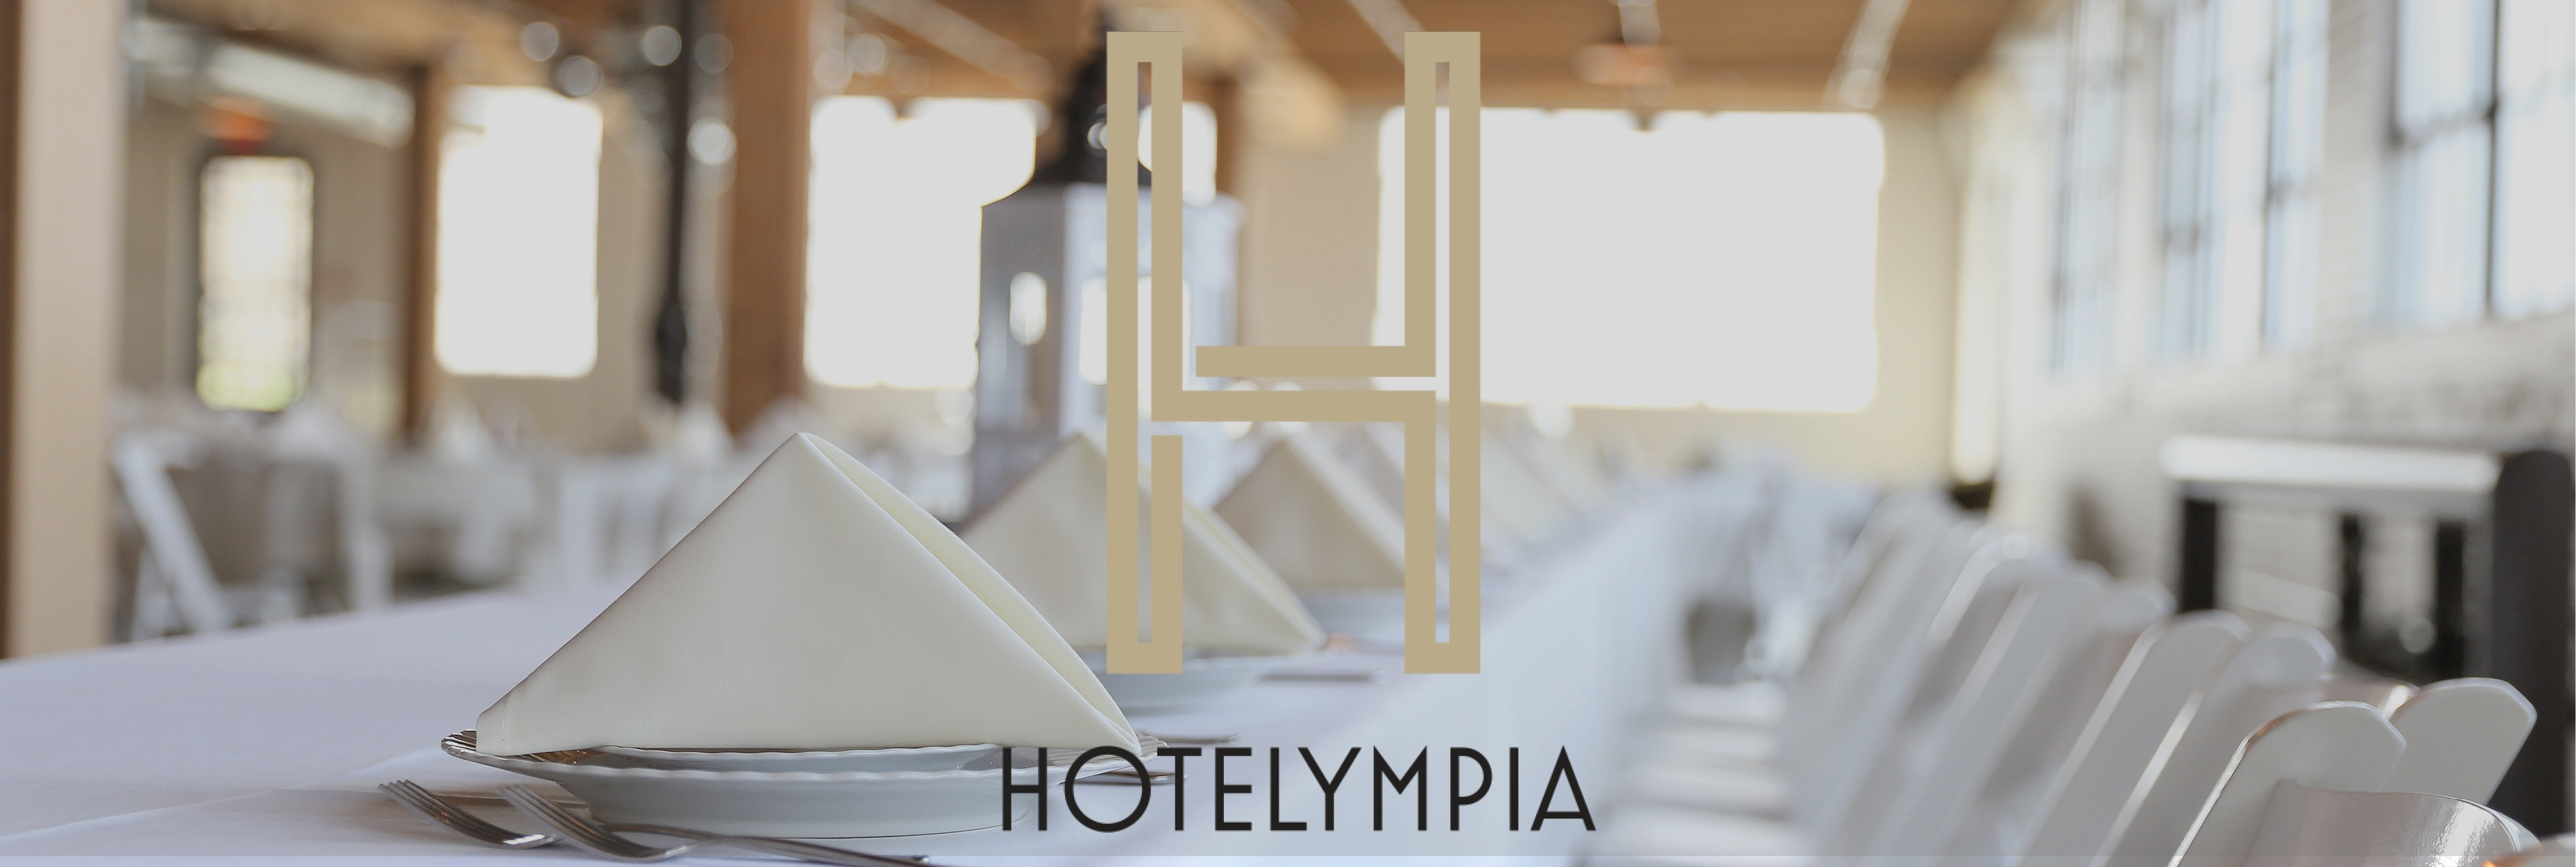 5 interesting companies from Hotelympia 2018.jpg